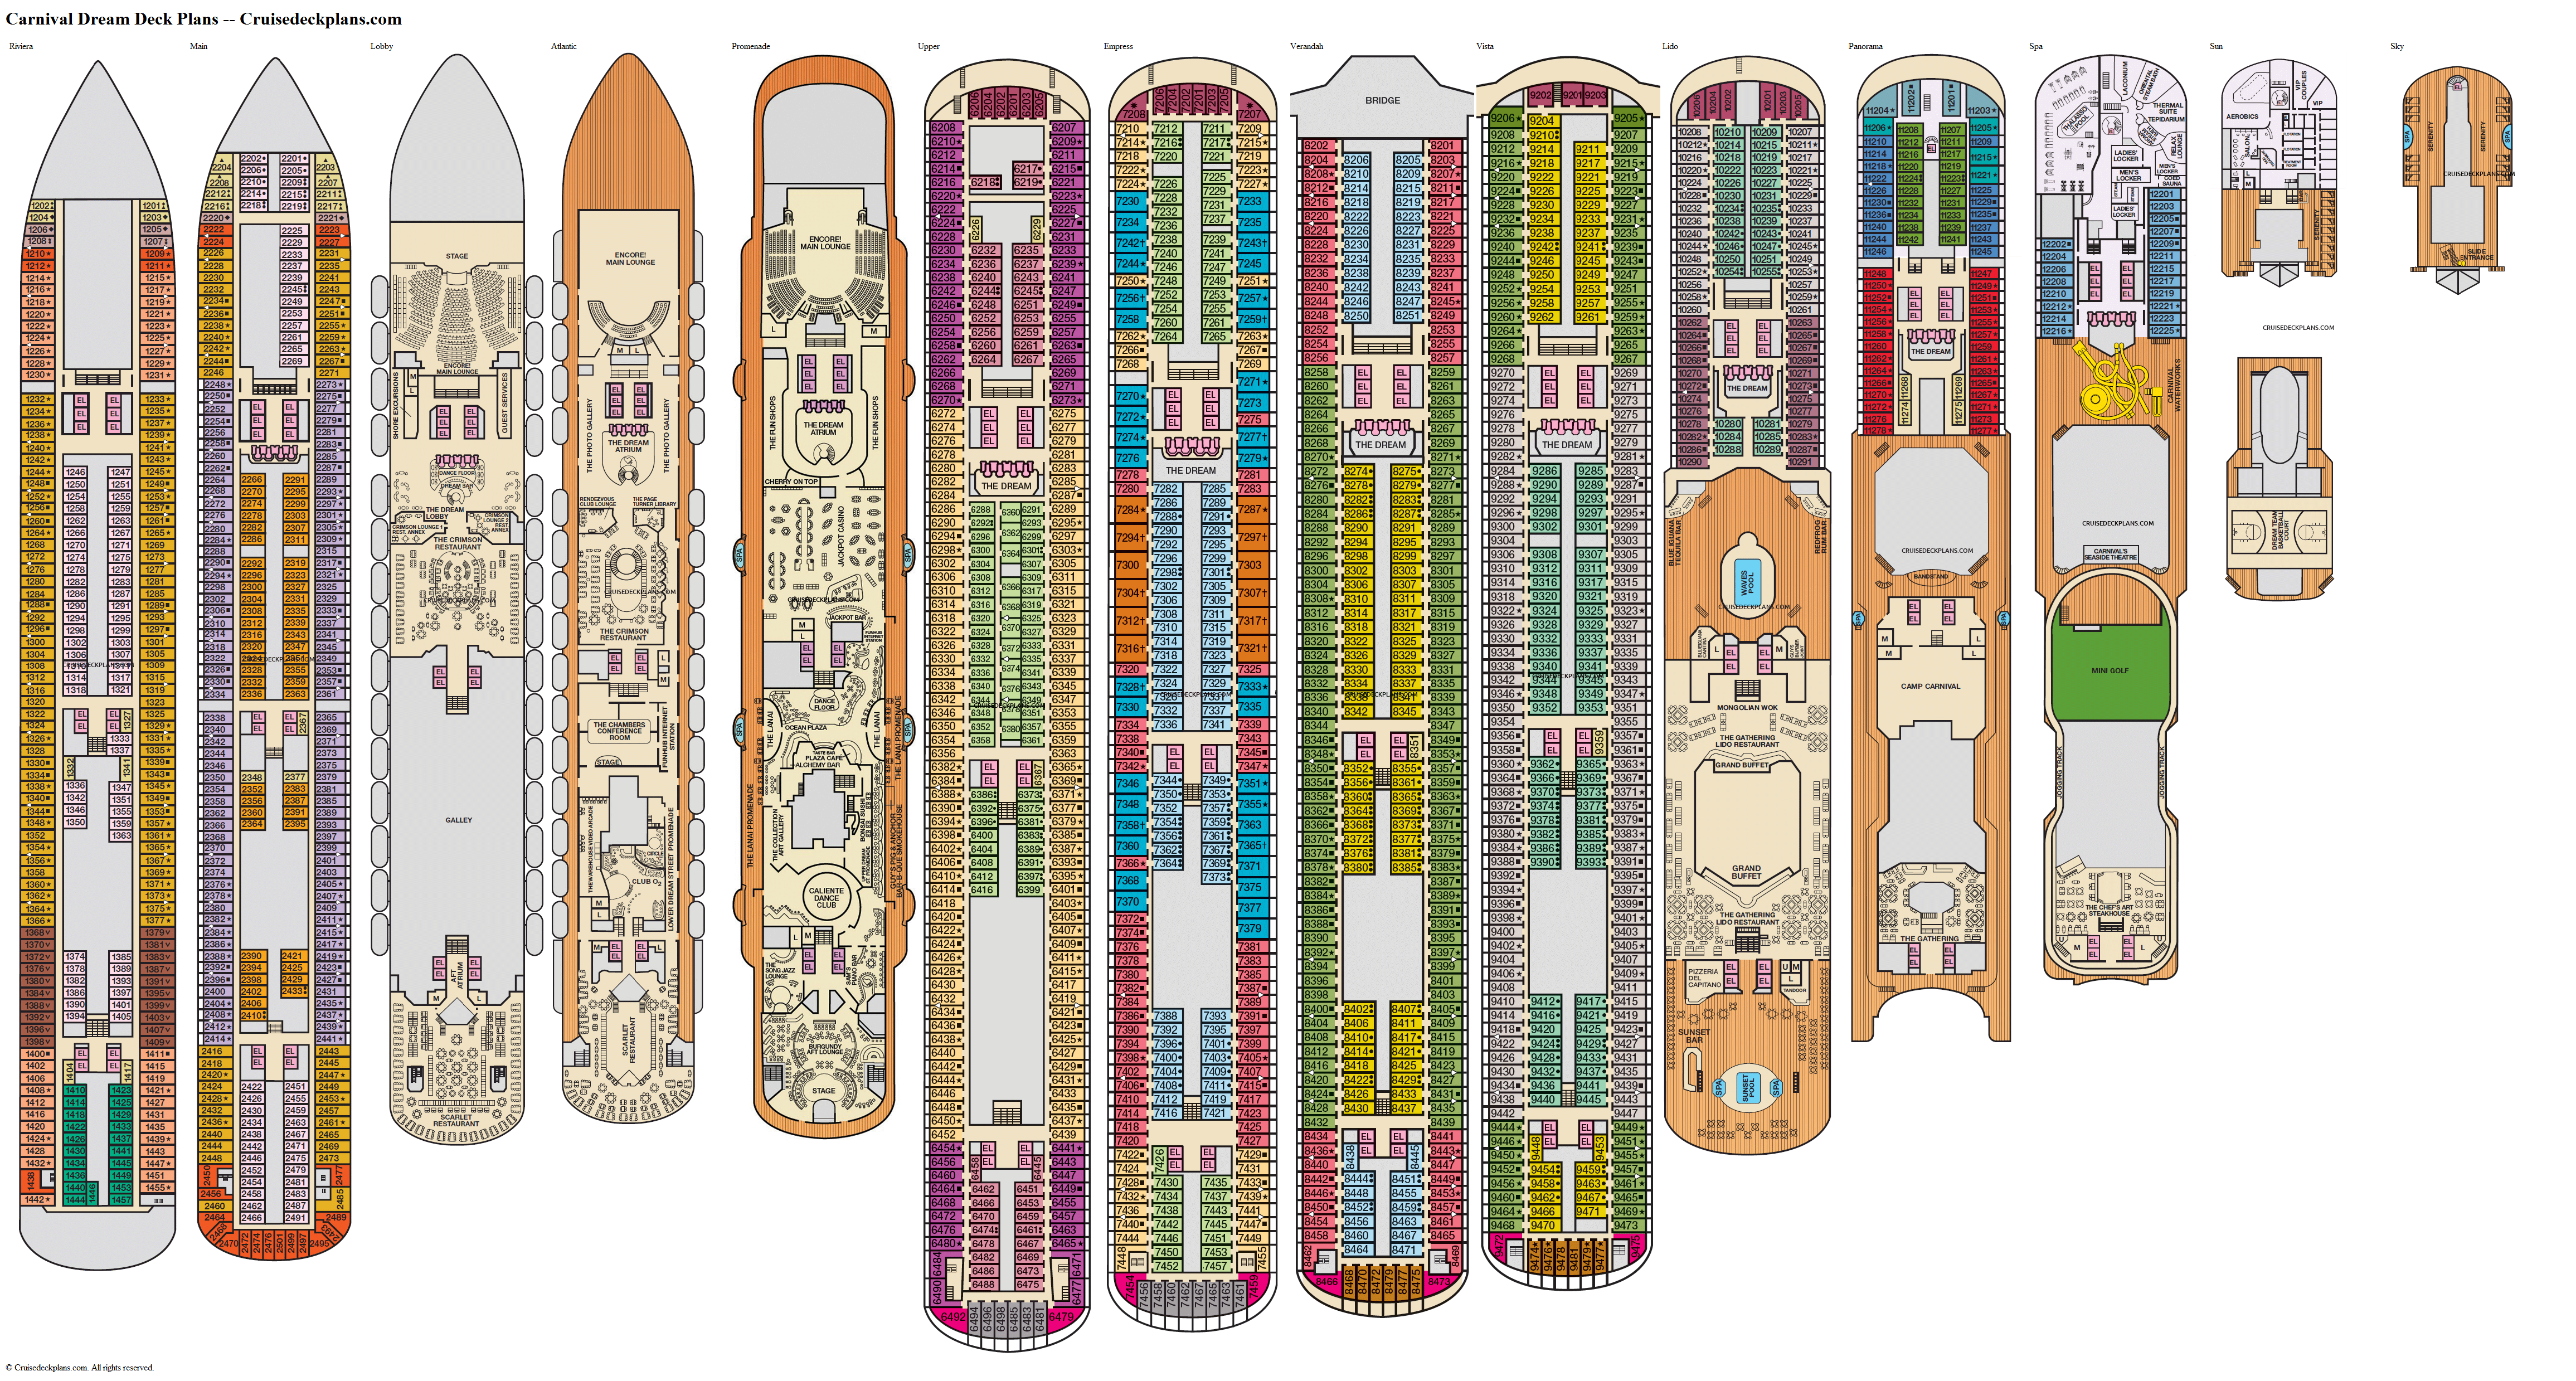 Carnival Dream deck plans image